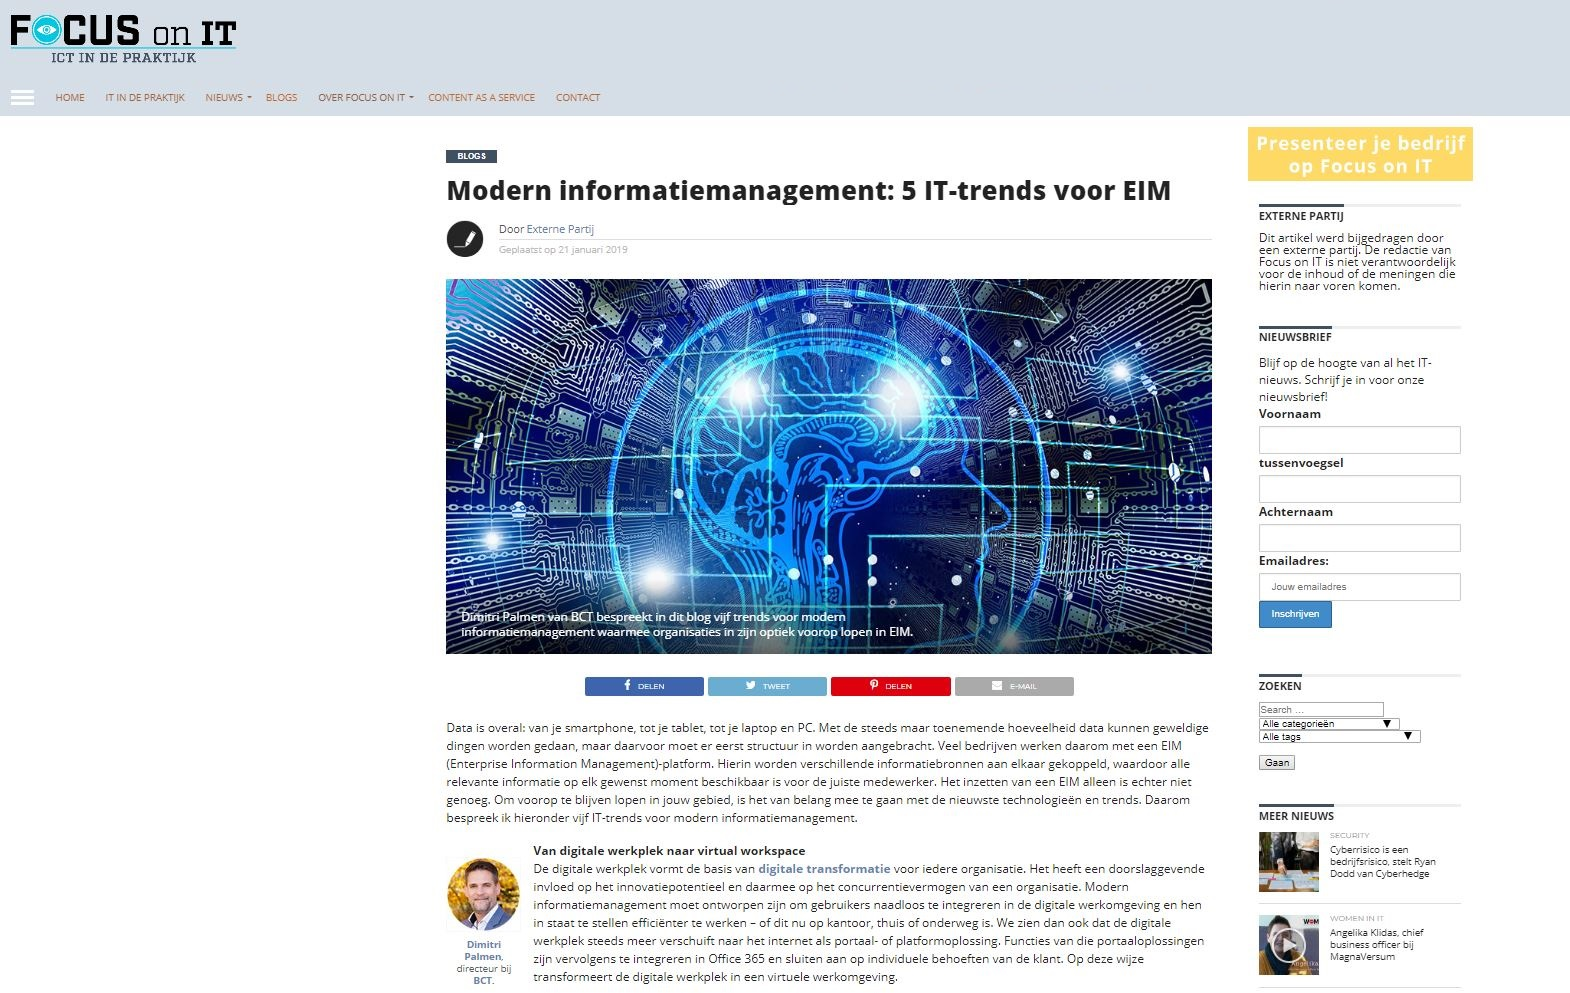 Modern informatiemanagement: 5 IT-trends voor EIM